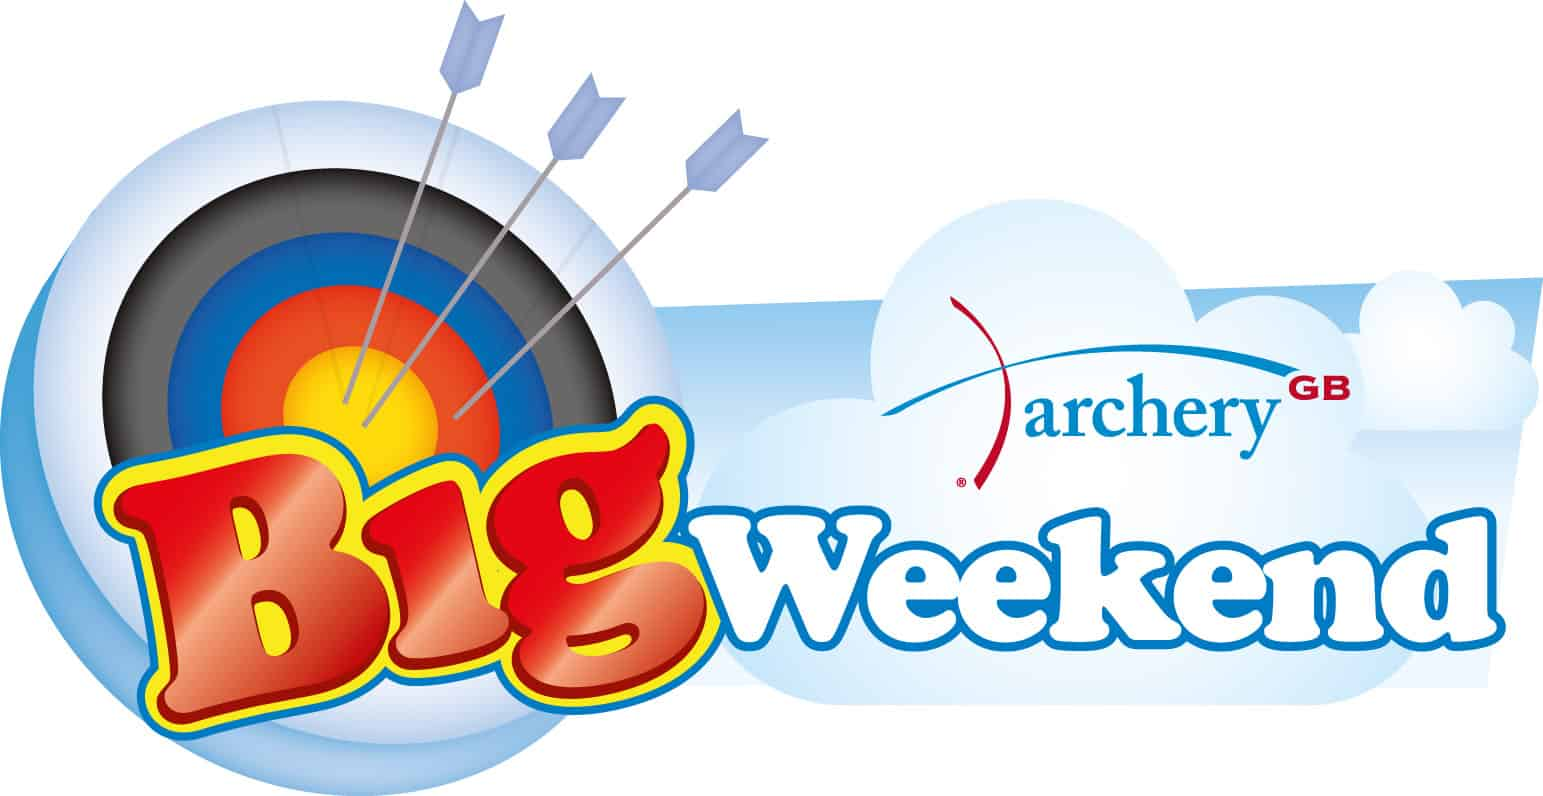 Week End Archery Gb Big Weekend Archery Gb